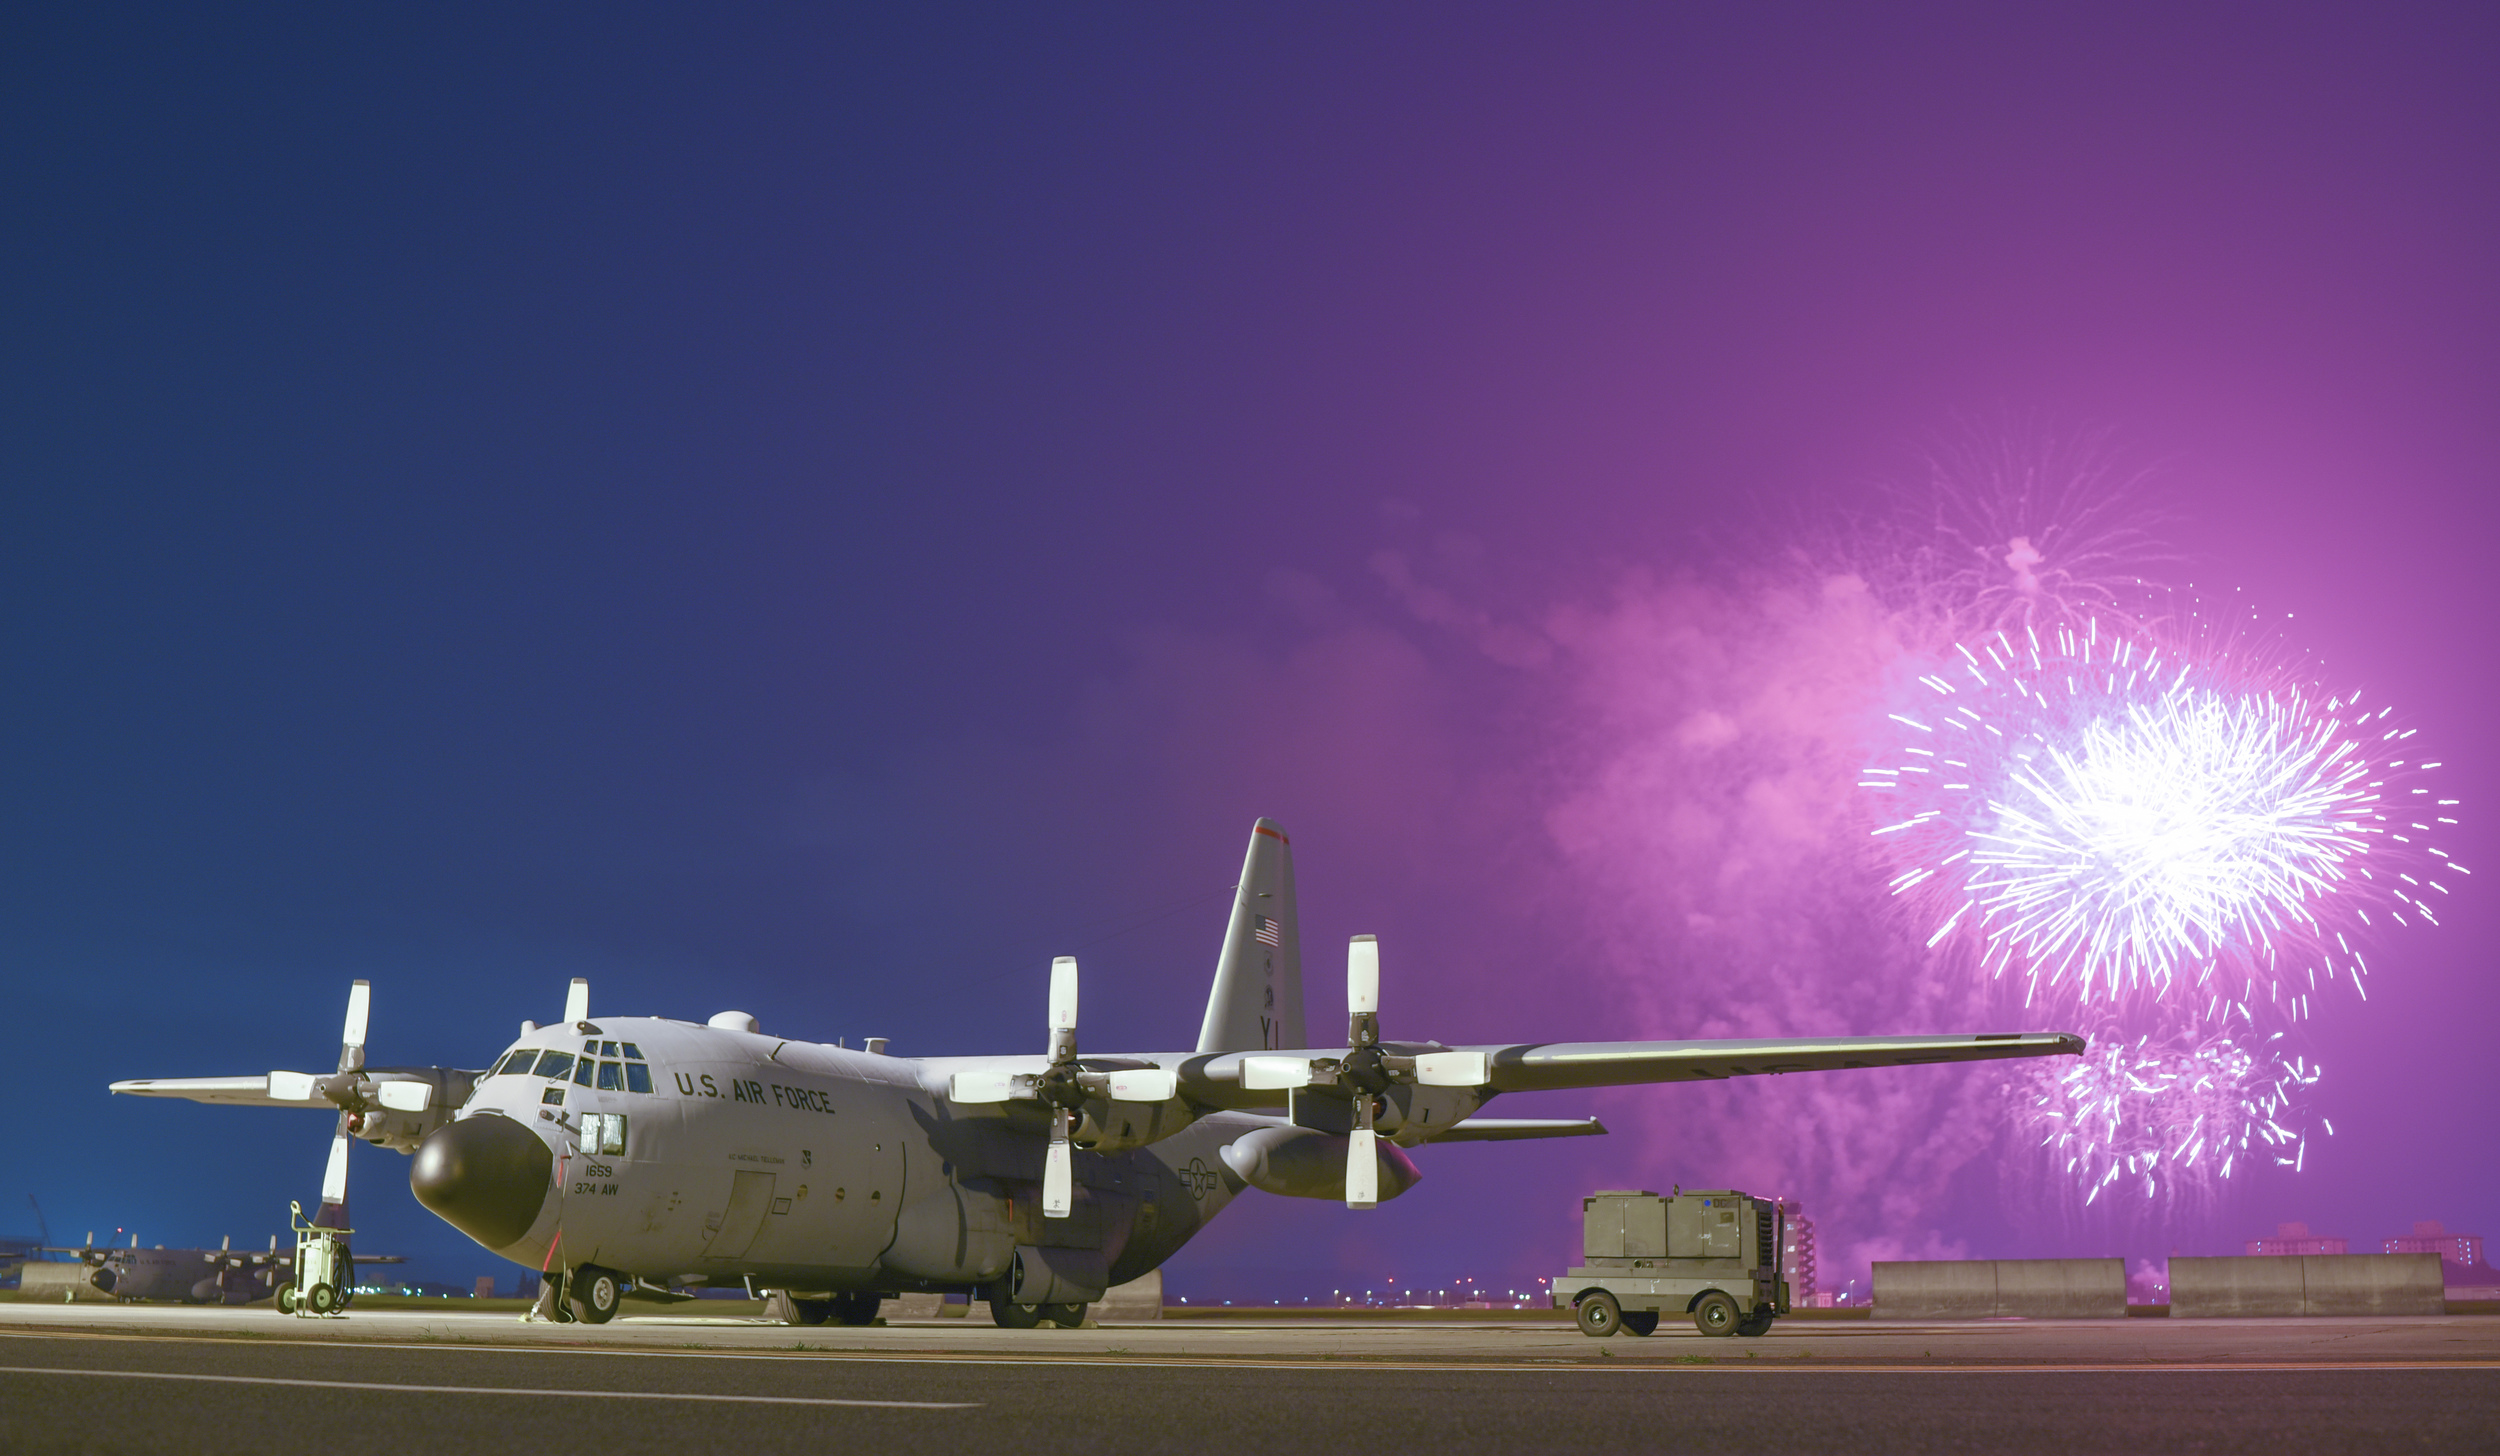 Fireworks explode behind a C-130 Hercules on the flightline during the finale of Celebrate America at Yokota Air Base, Japan, July 2, 2015. Celebrate America is hosted every year to celebrate America's Independence Day and enhance esprit de corps. (U.S. Air Force photo by Senior Airman Michael Washburn/Released)